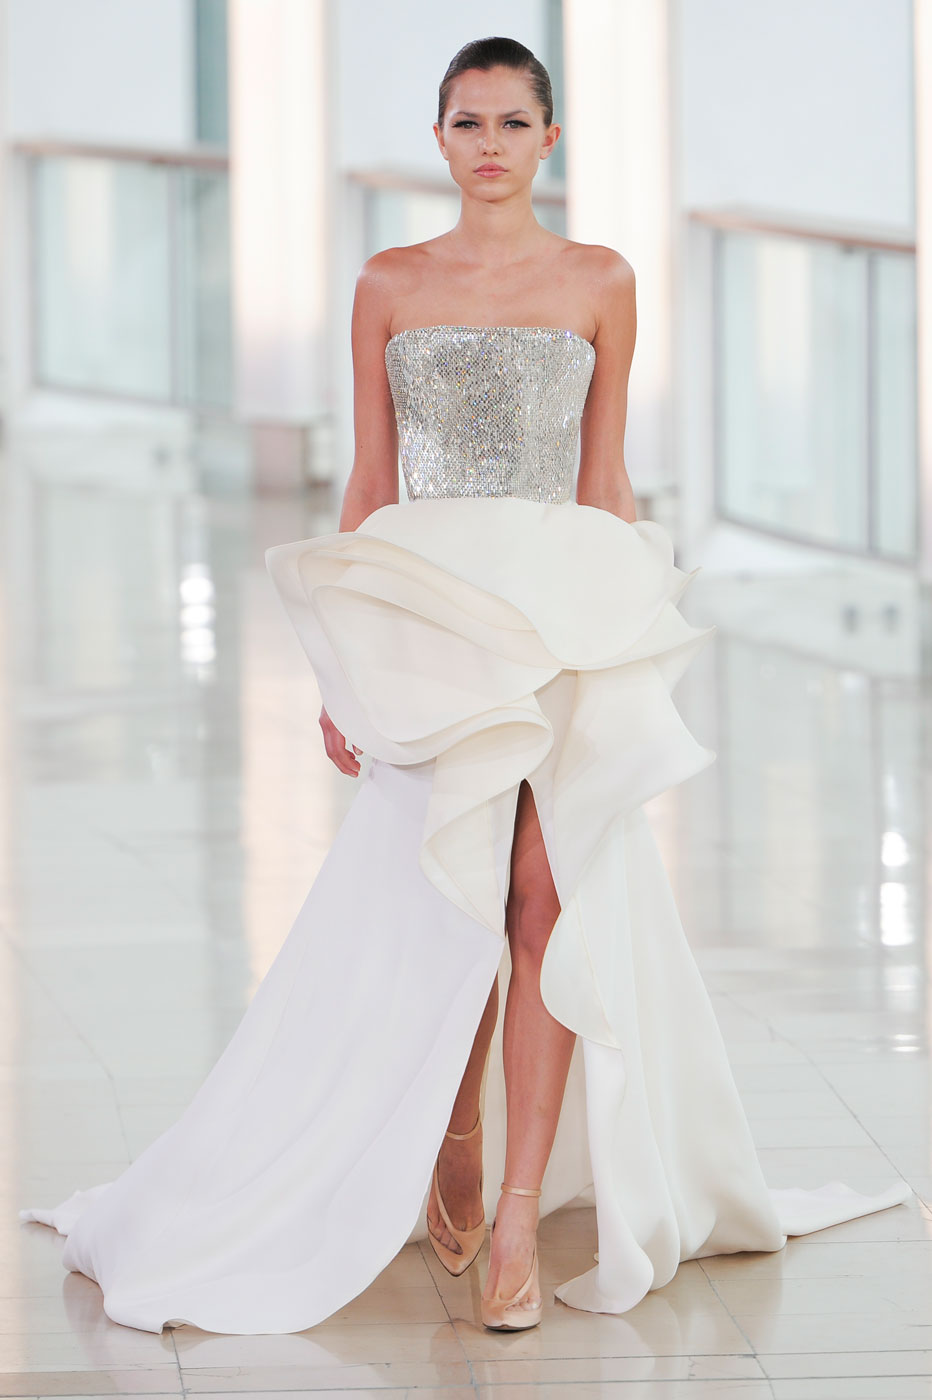 stephane-rolland-fashion-runway-show-haute-couture-paris-spring-2015-the-impression-25